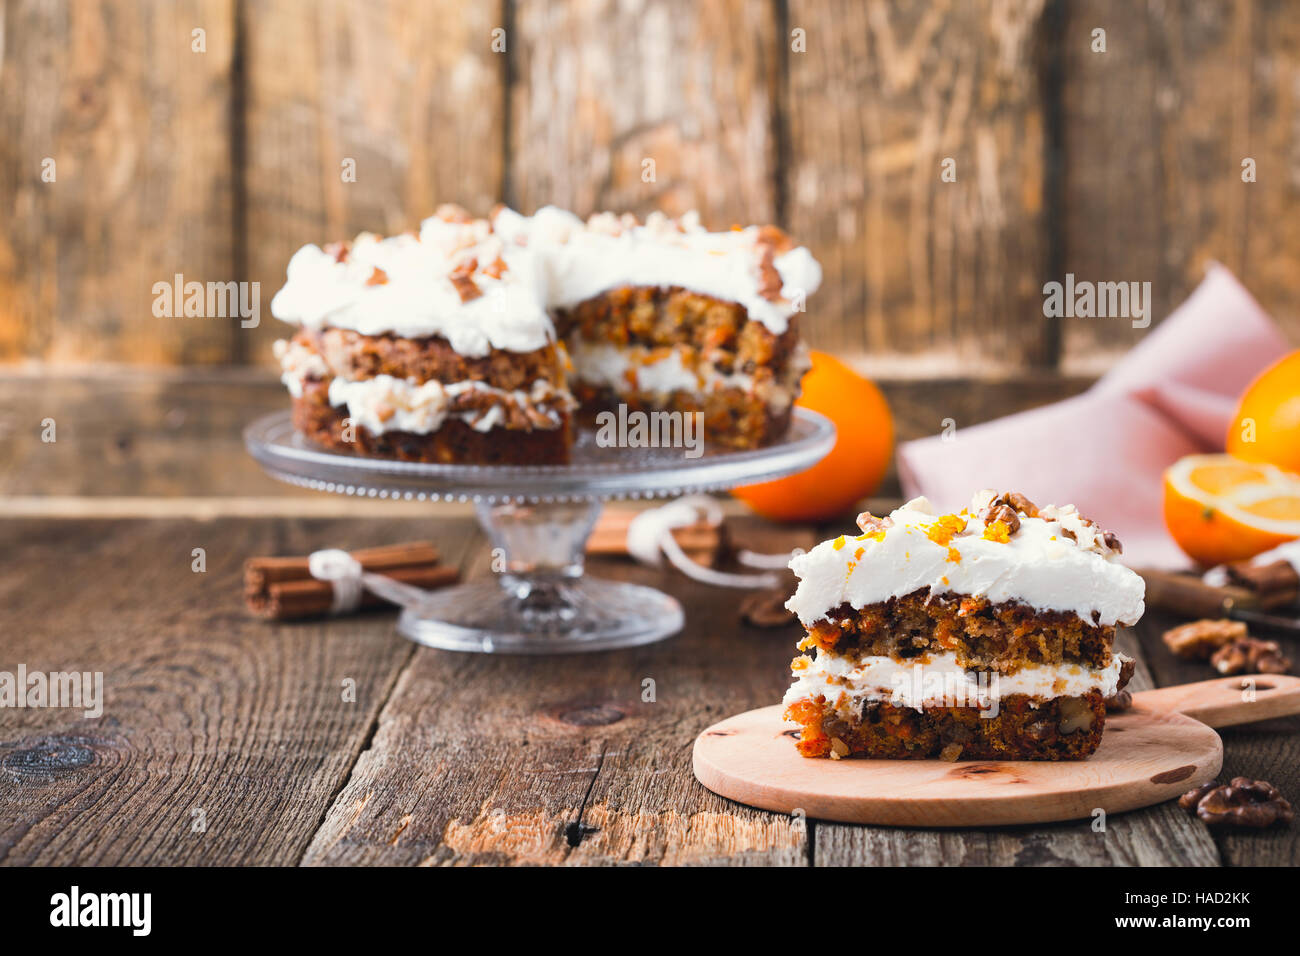 Homemade carrot orange cake with cream cheese frosting, traditional american afternoon tea treat Stock Photo